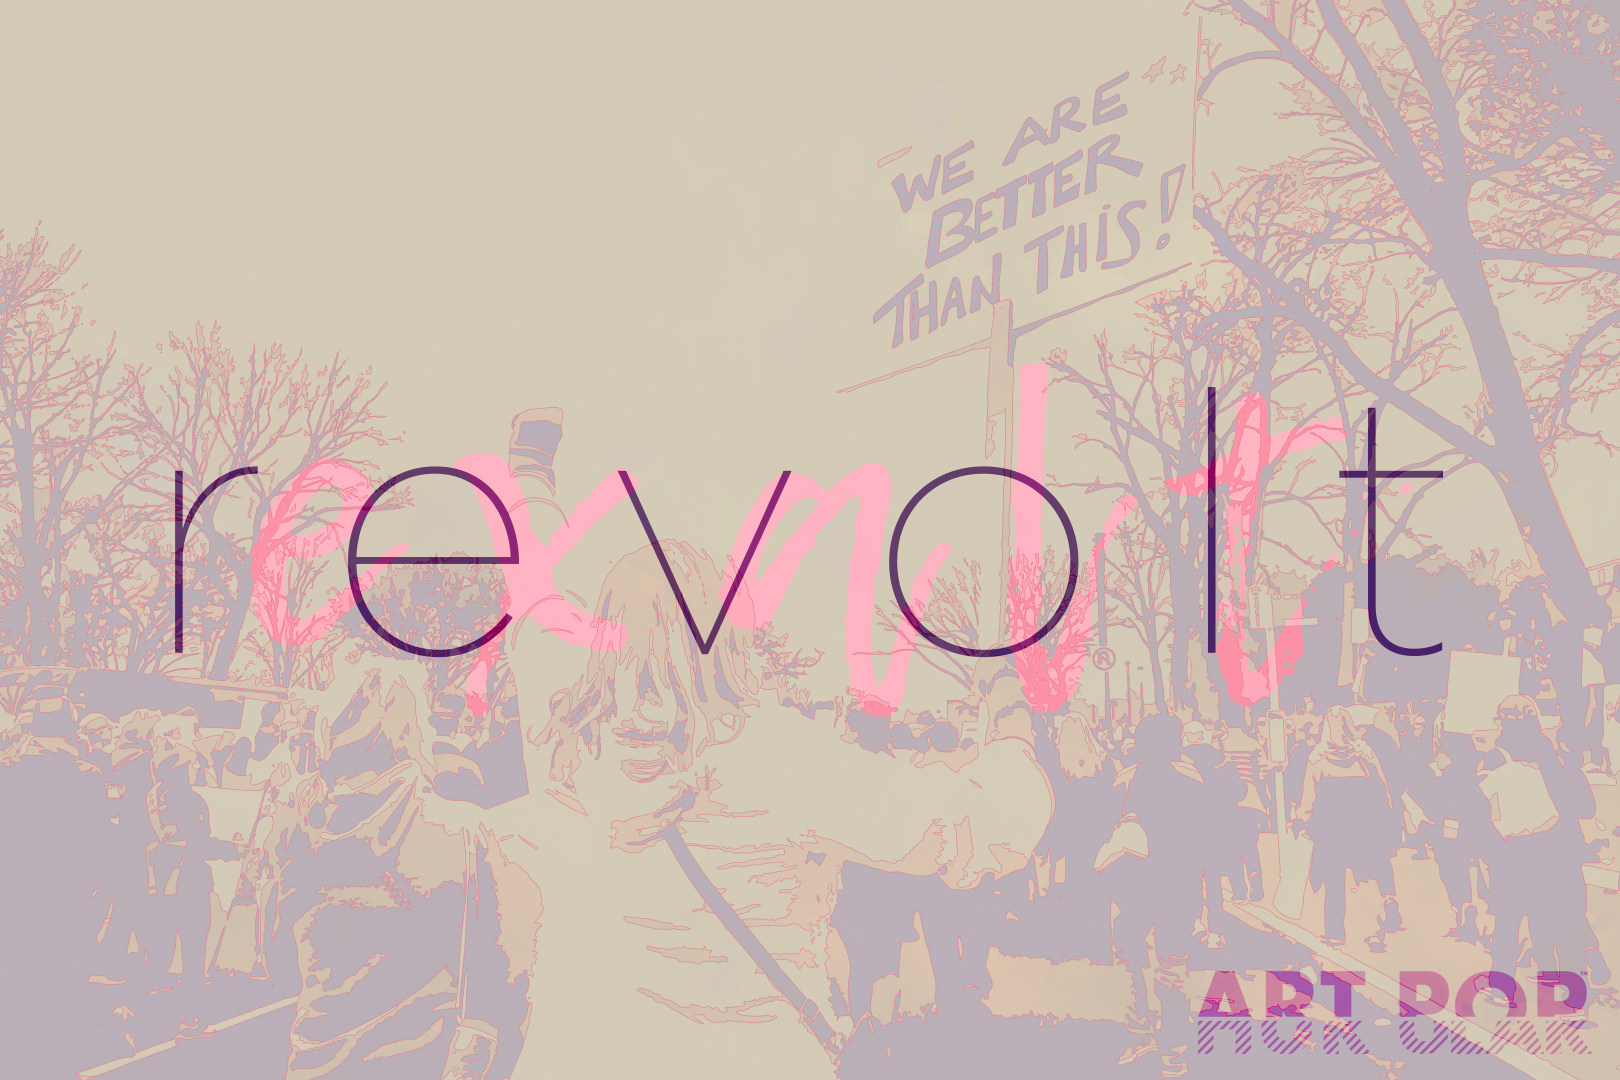 Revolt / Exalt - If I'm being completely honest, this piece is actually inspired by the